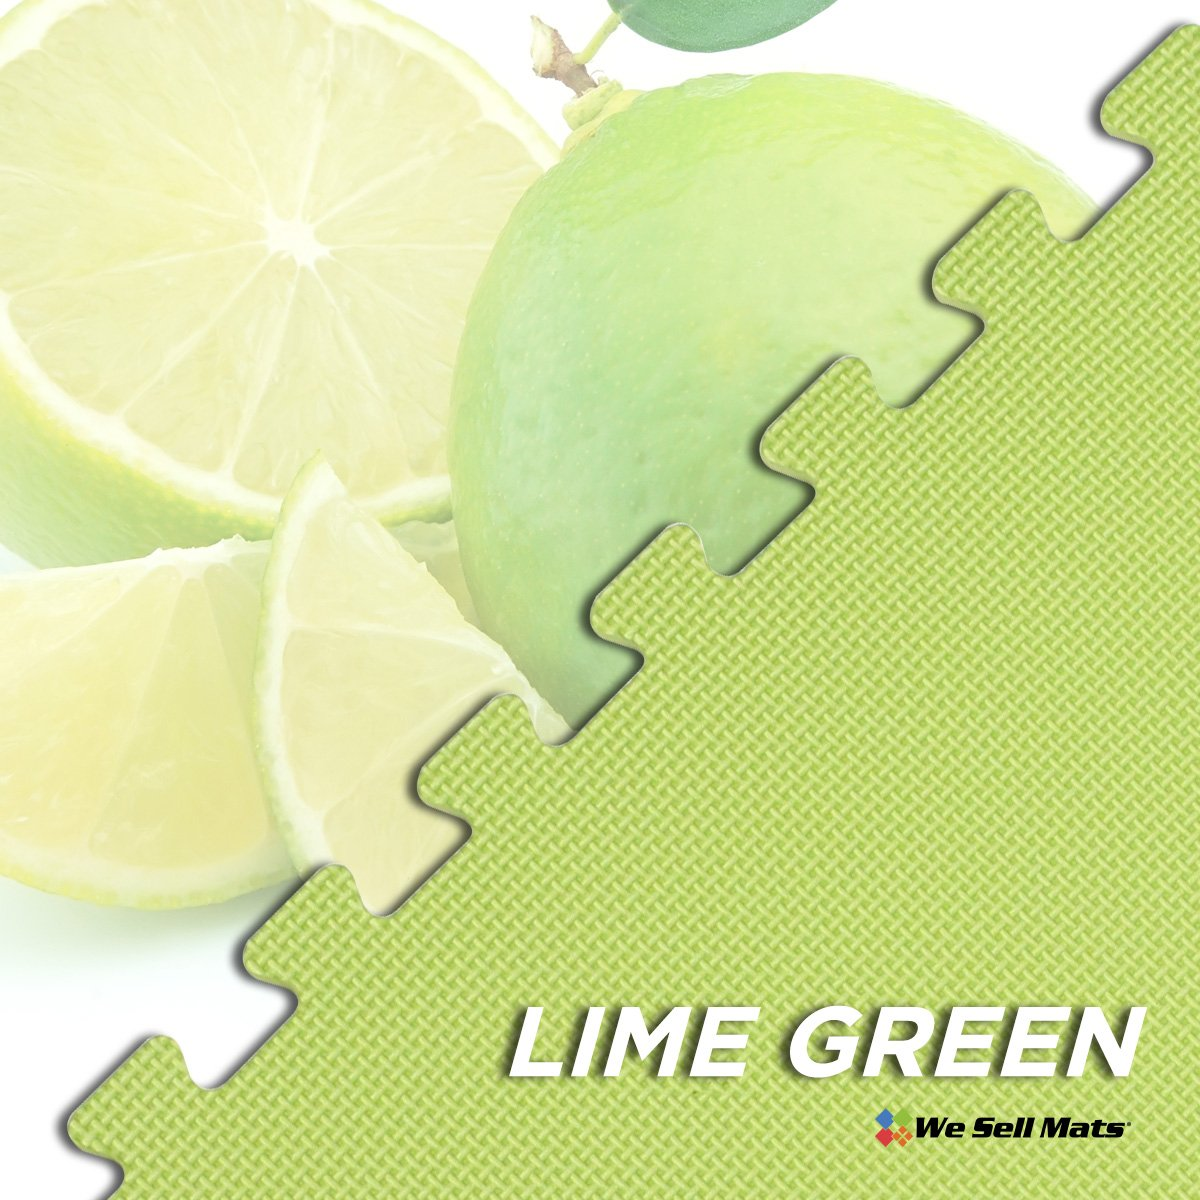 We Sell Mats Lime Green 16 Sq Ft (4 Assorted Tiles + Borders) Foam Interlocking Anti-Fatigue Exercise Gym Floor Square Trade Show Tiles by We Sell Mats (Image #5)